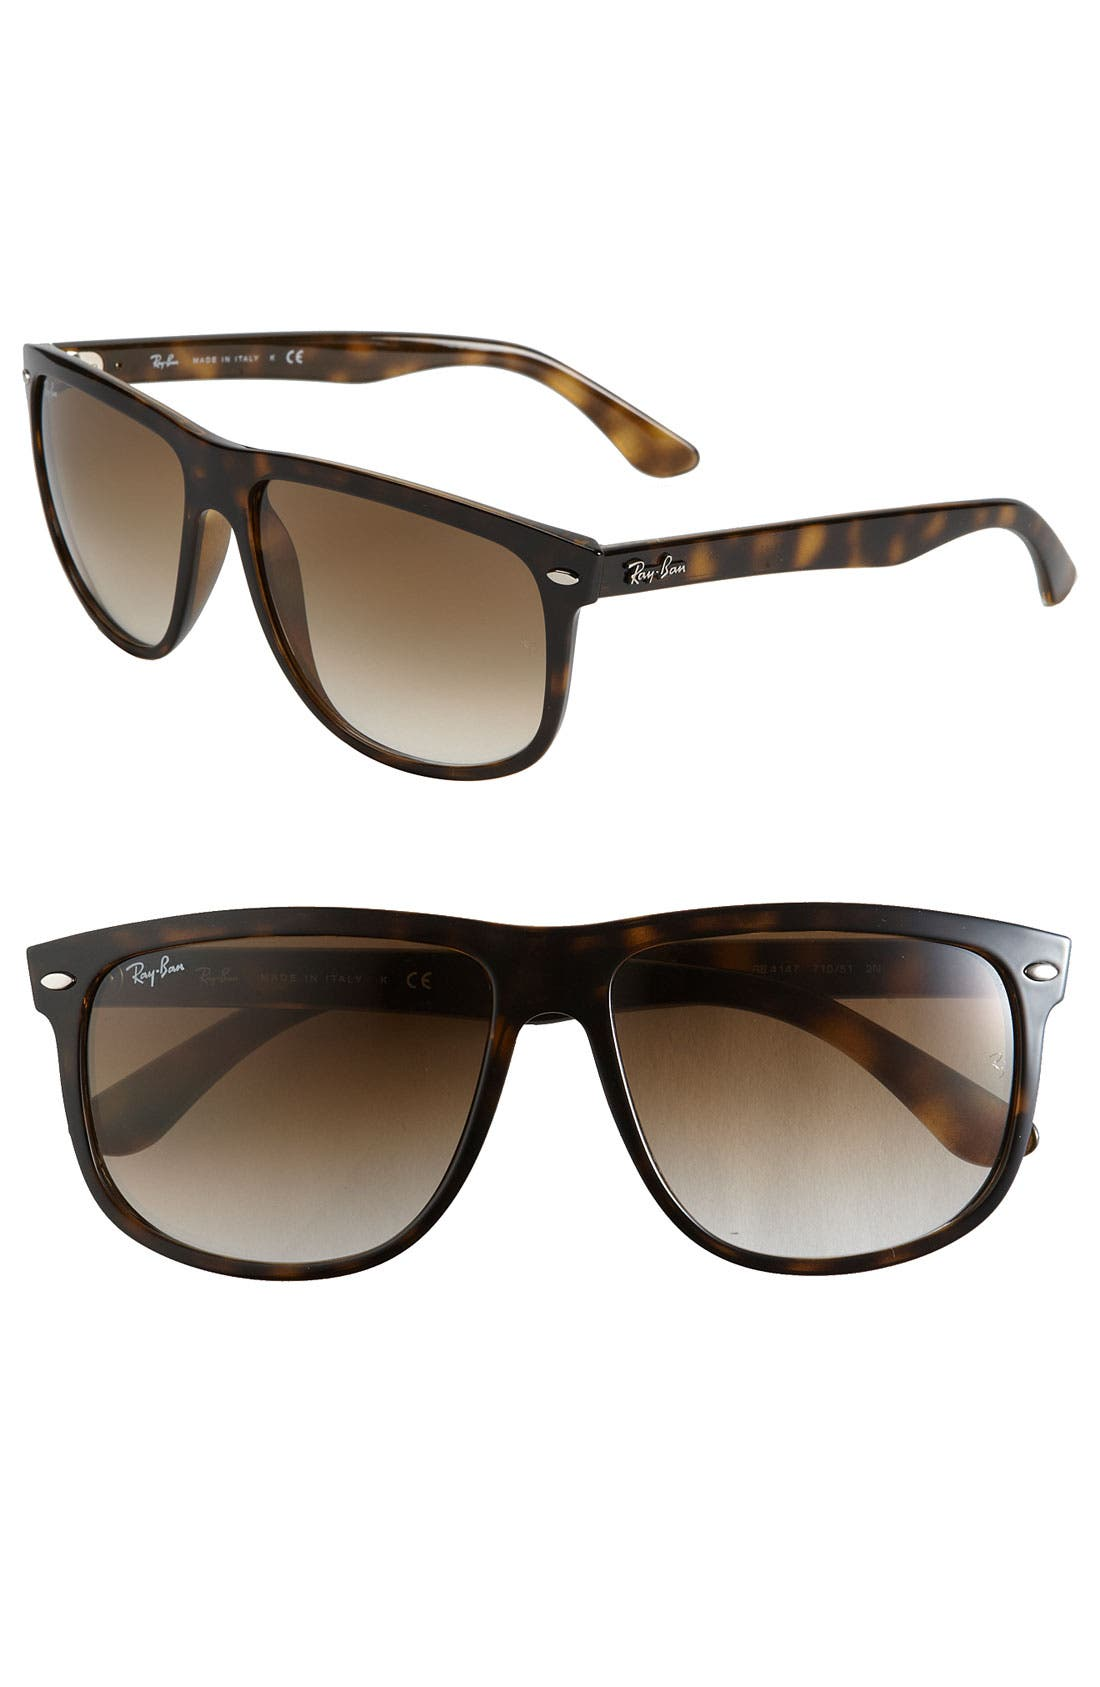 Main Image - Ray-Ban Boyfriend 60mm Flat Top Sunglasses